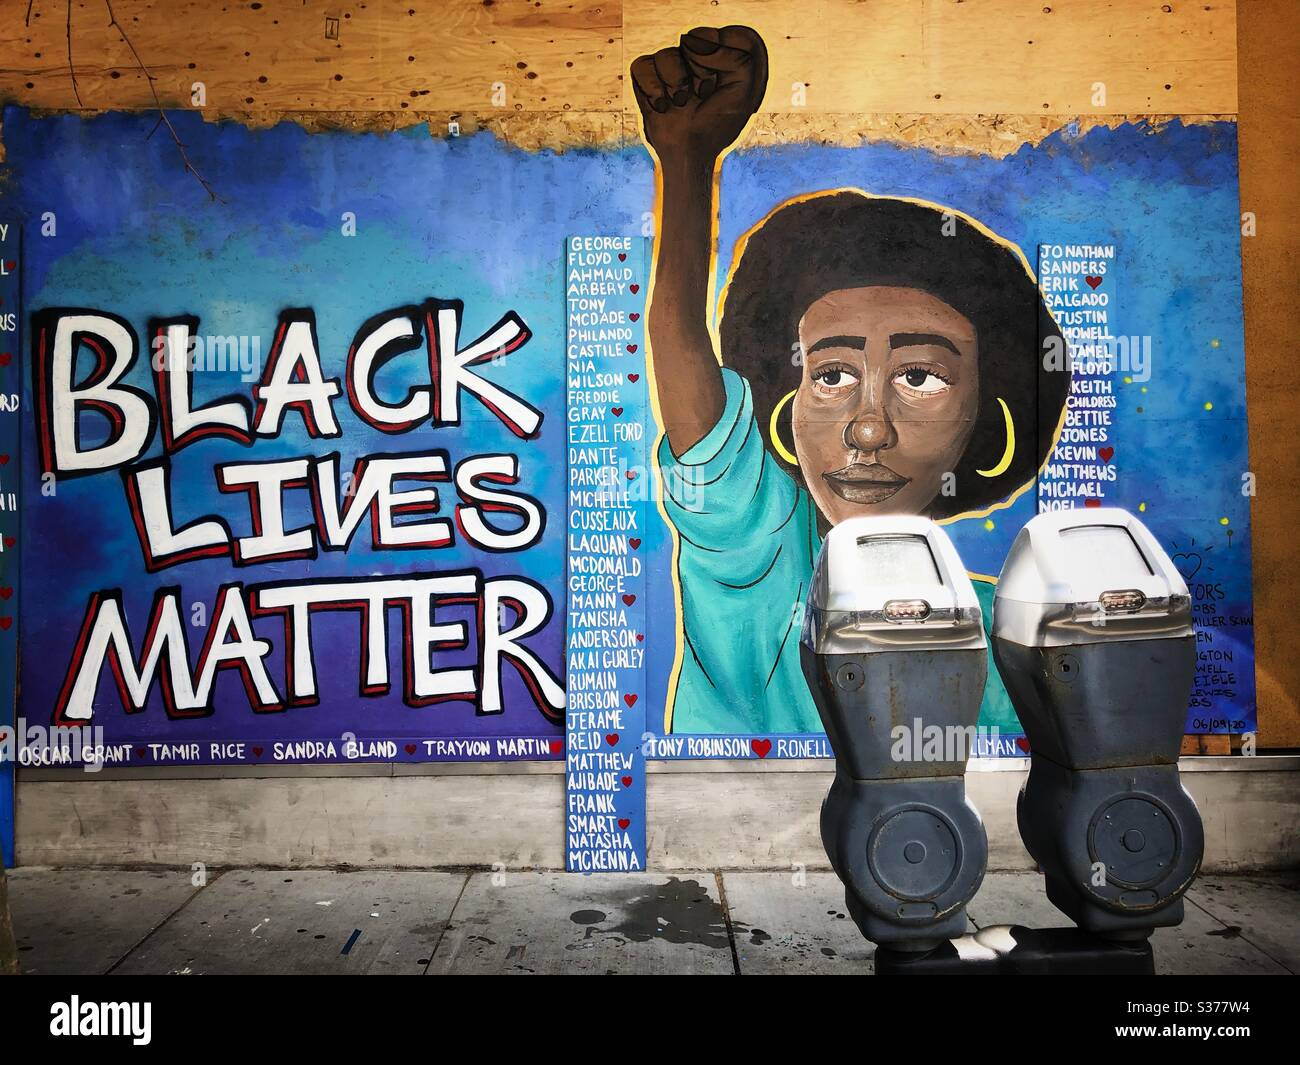 Black Lives Matter mural painted on a boarded up storefront in Oakland, California. Stock Photo